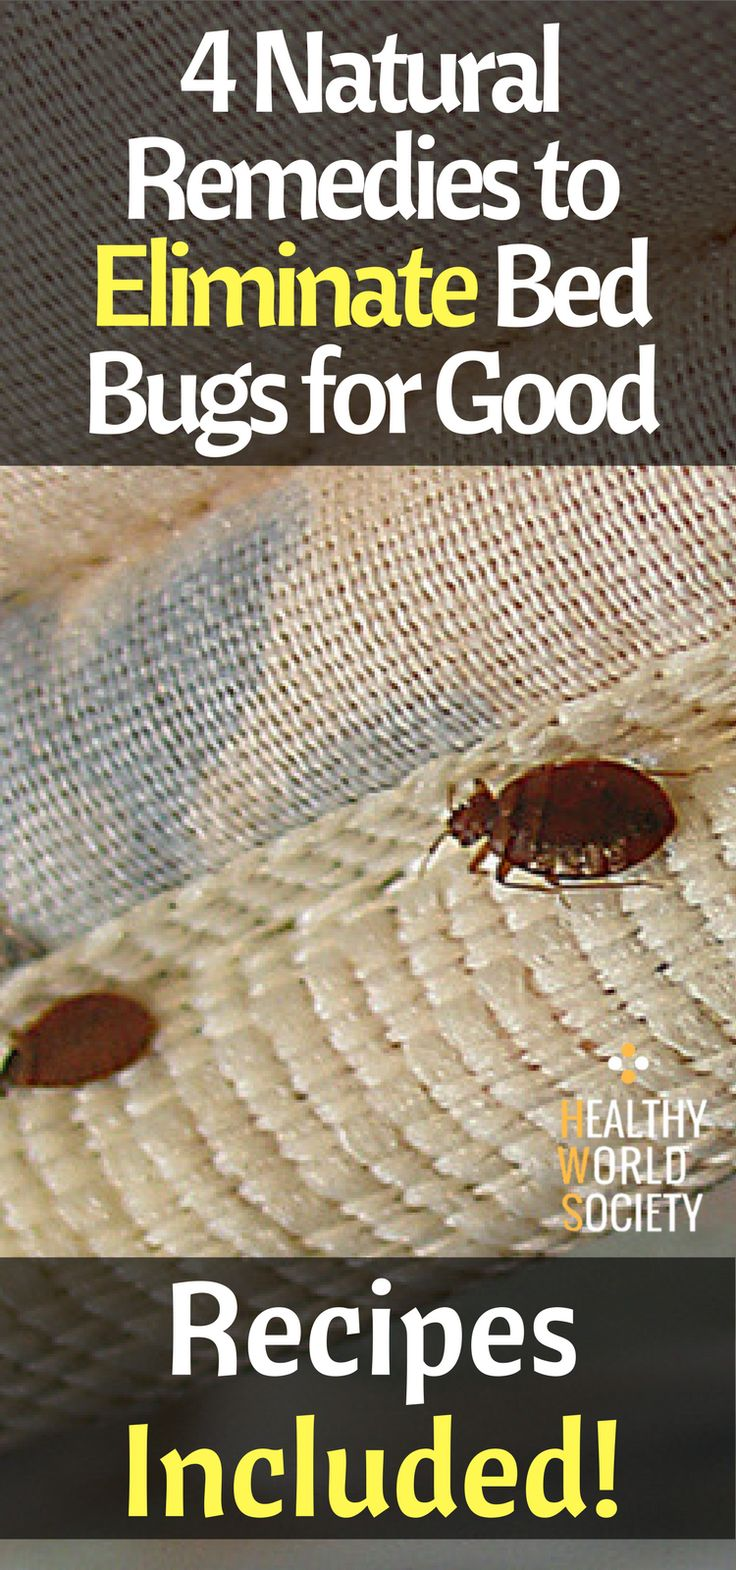 4 Natural Remedies to Eliminate Bed Bugs for Good